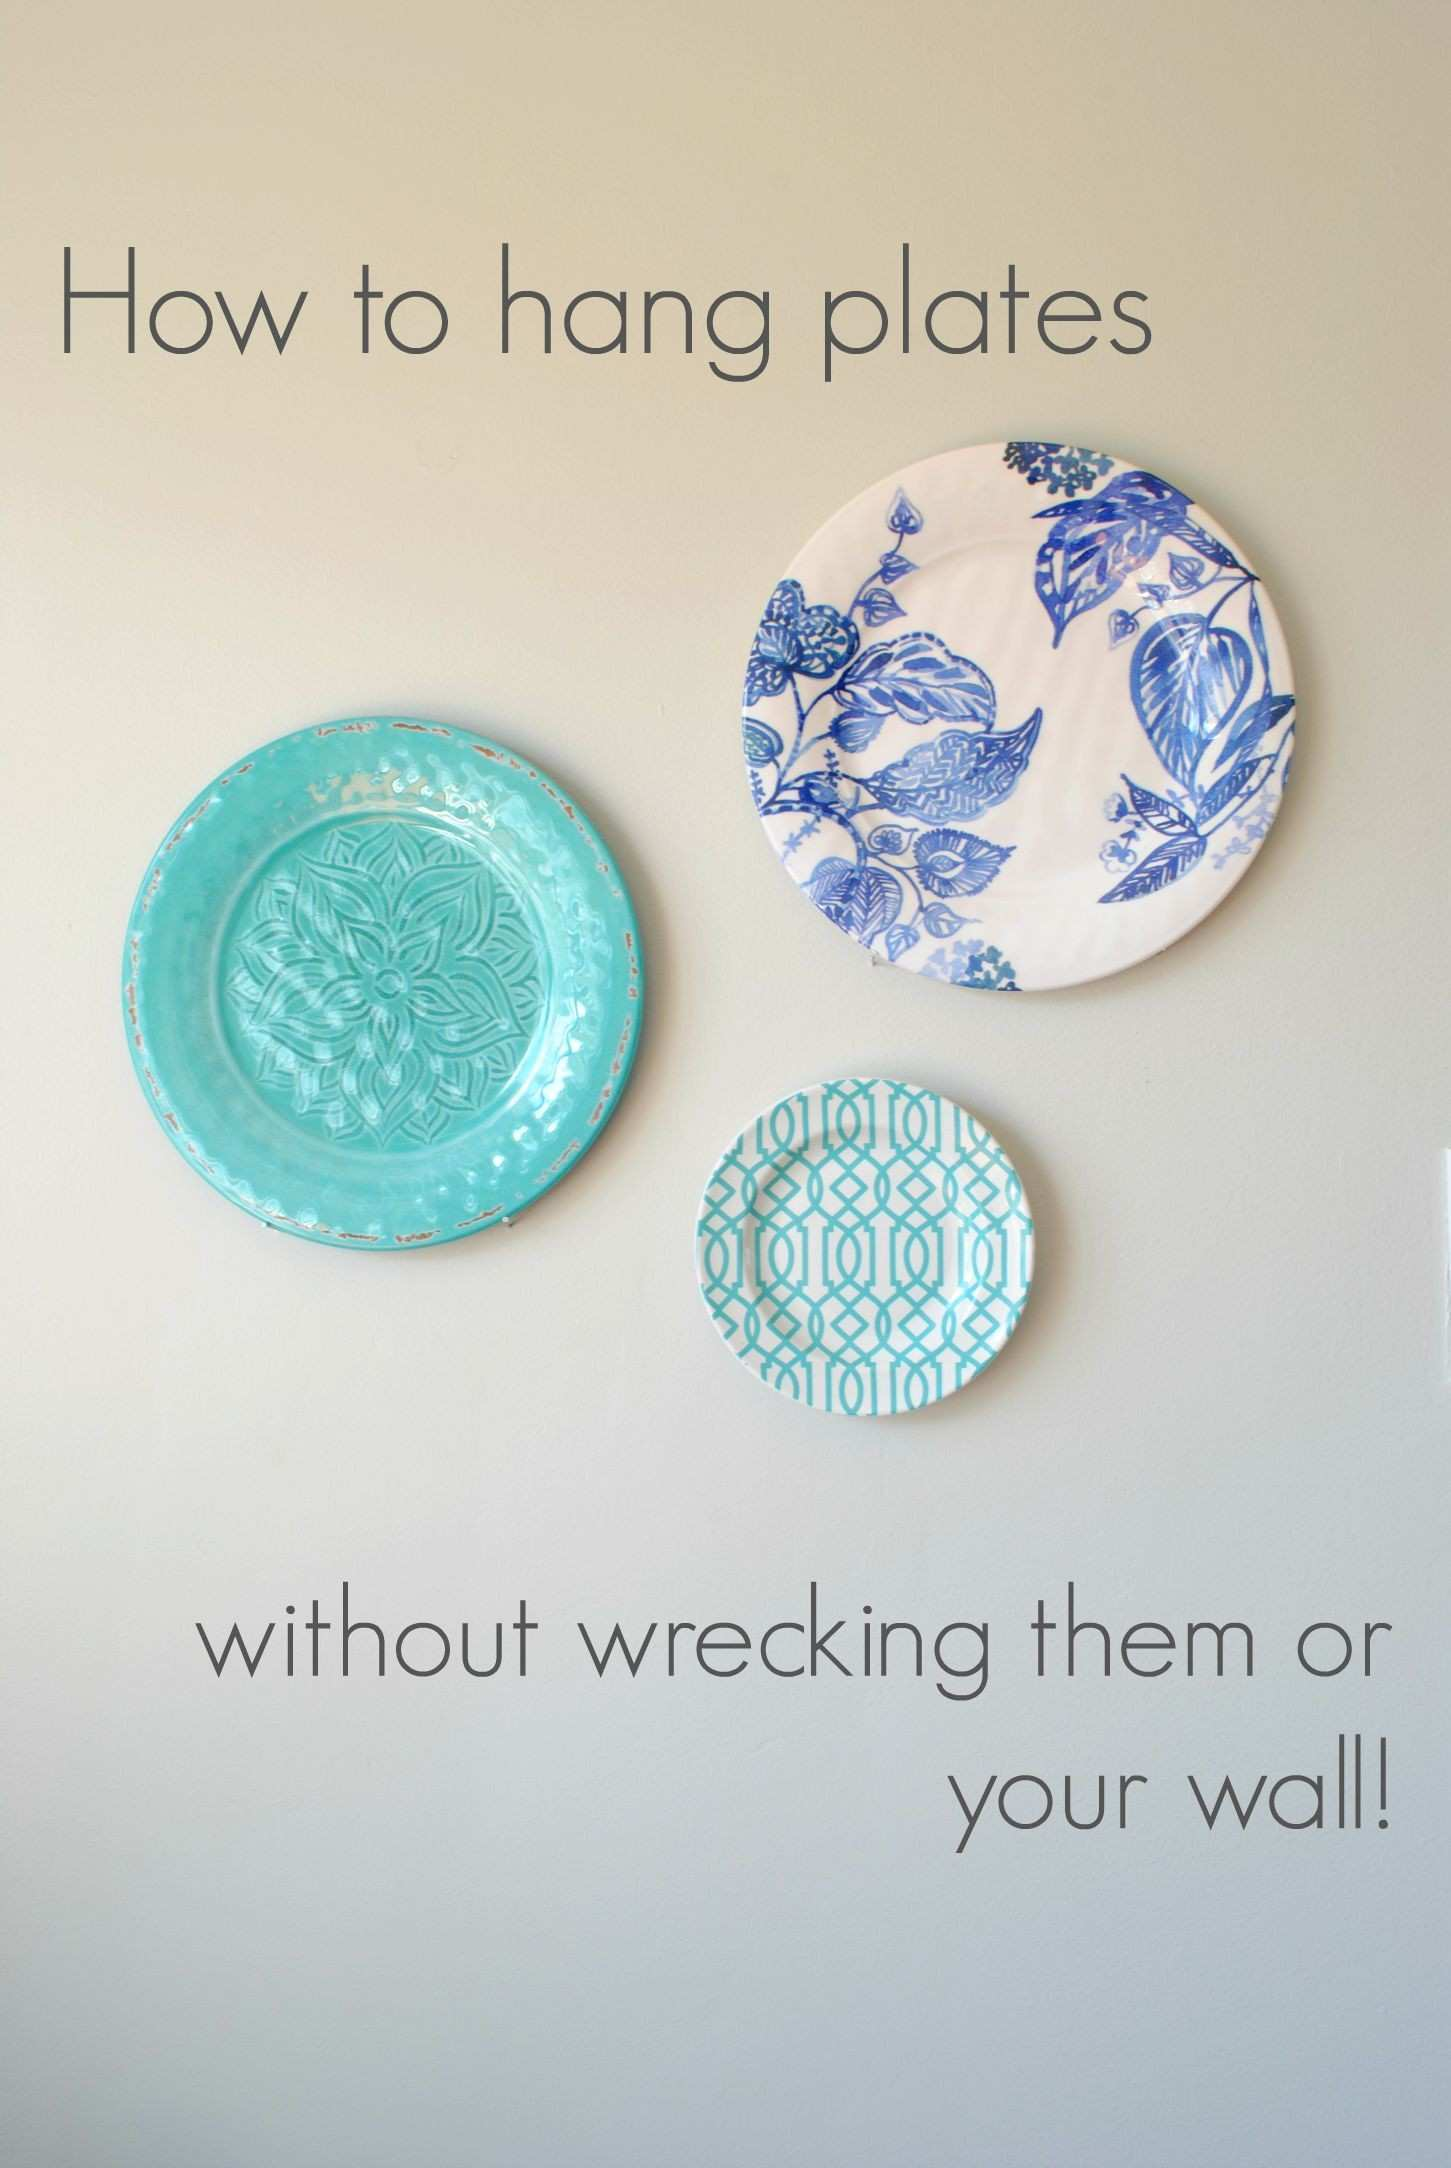 Cheap And Easy Decor Hang Plates Without Hurting Them Your Walls